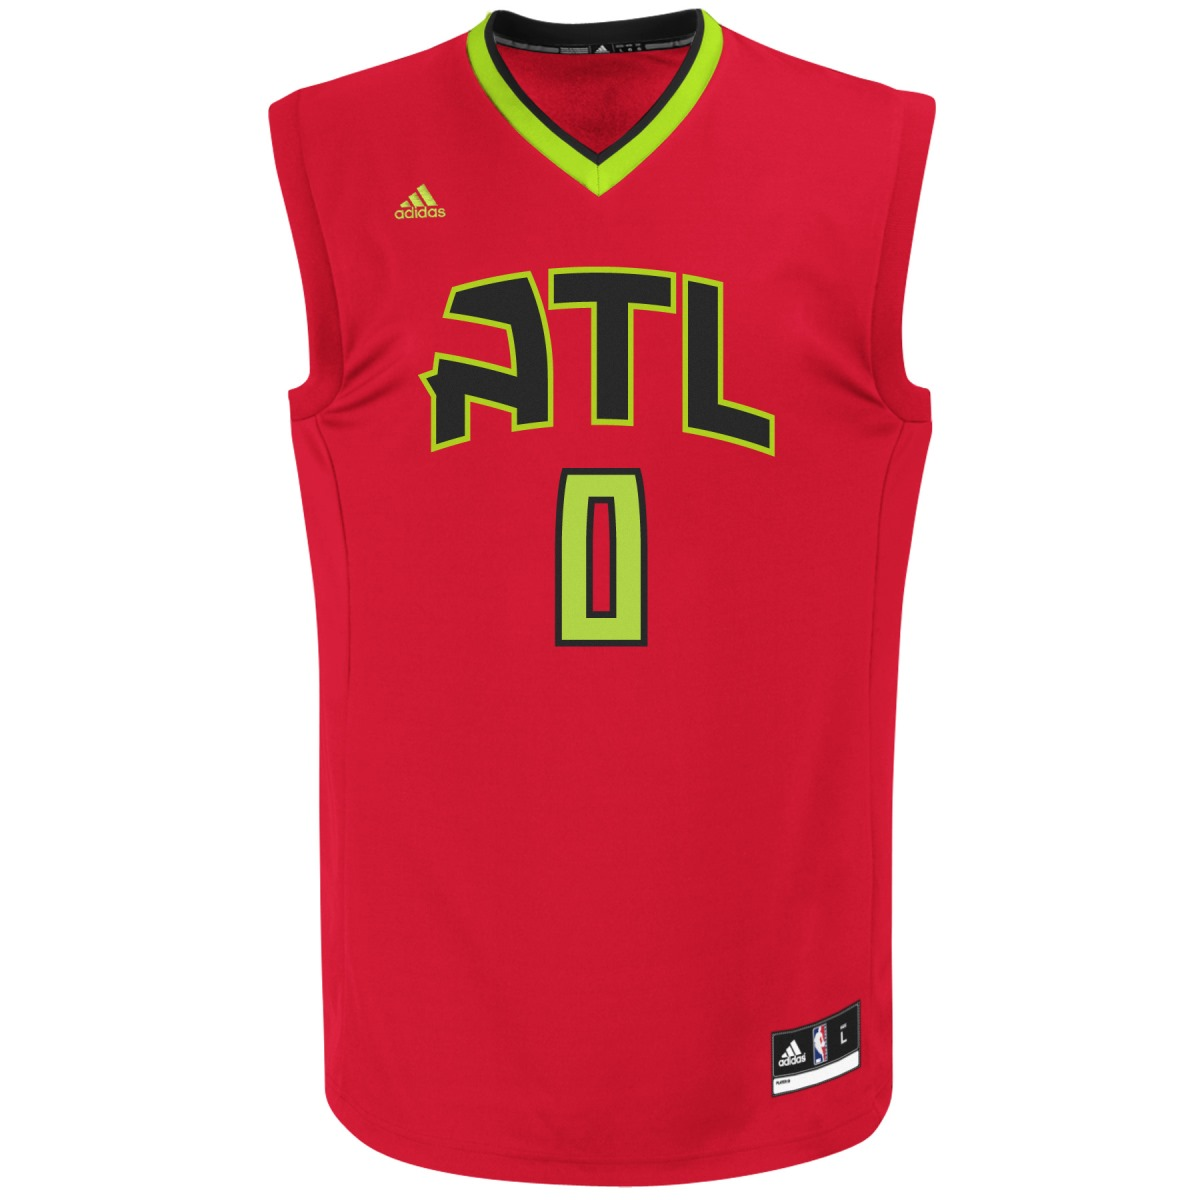 Jeff Teague Atlanta Hawks Adidas NBA Replica Jersey